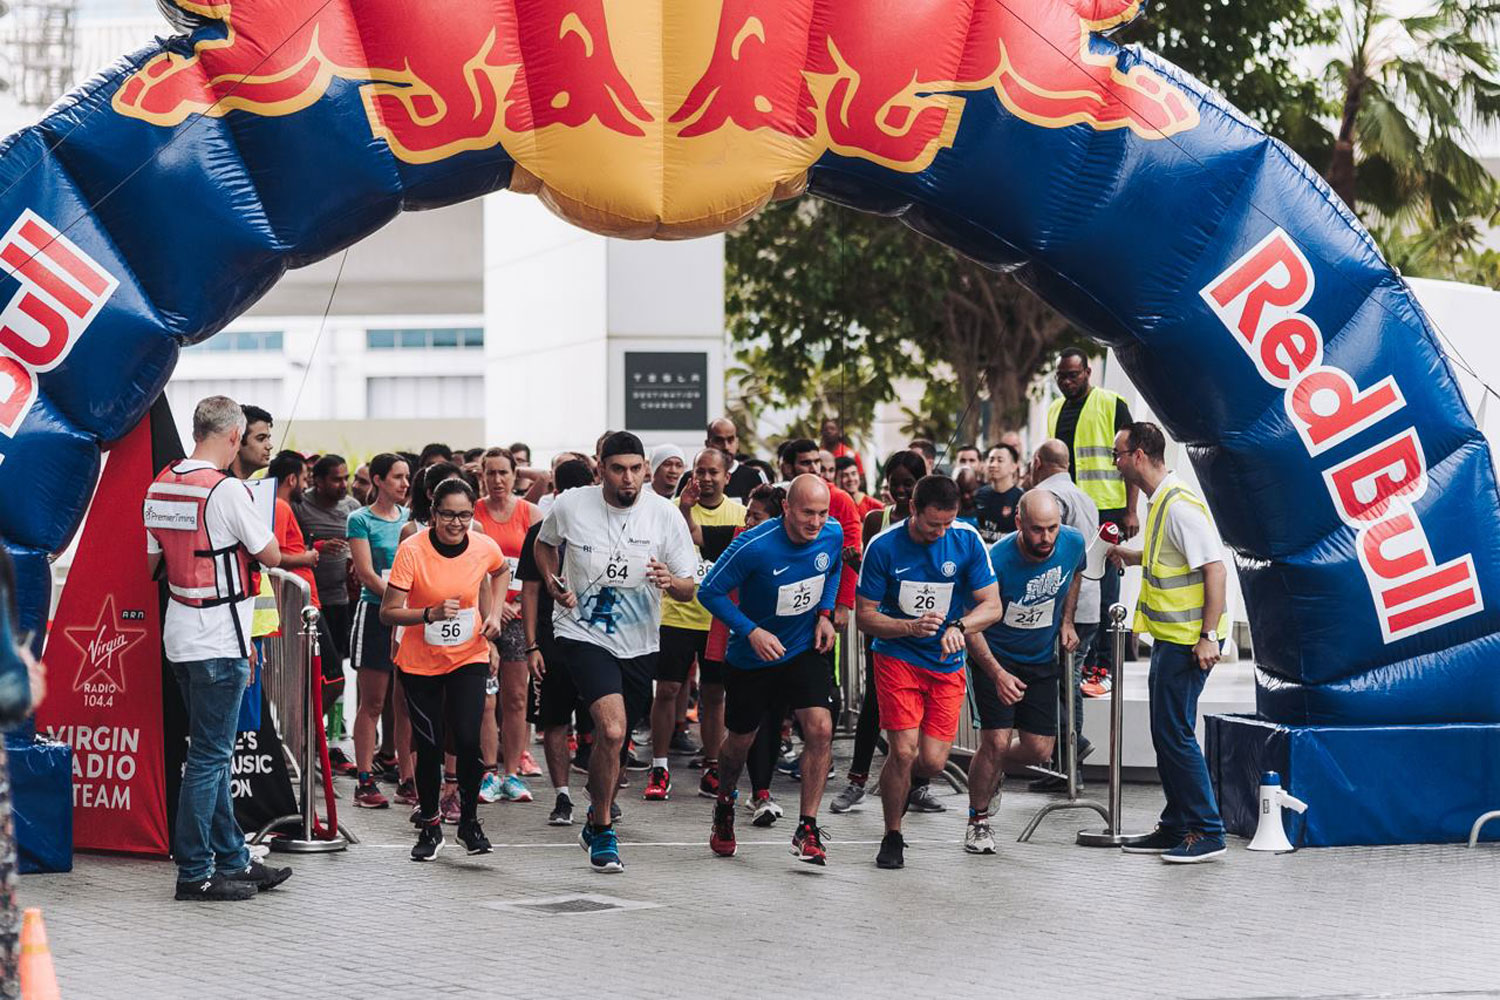 M1 Run on Feb 15th at Media One Hotel Dubai 2020